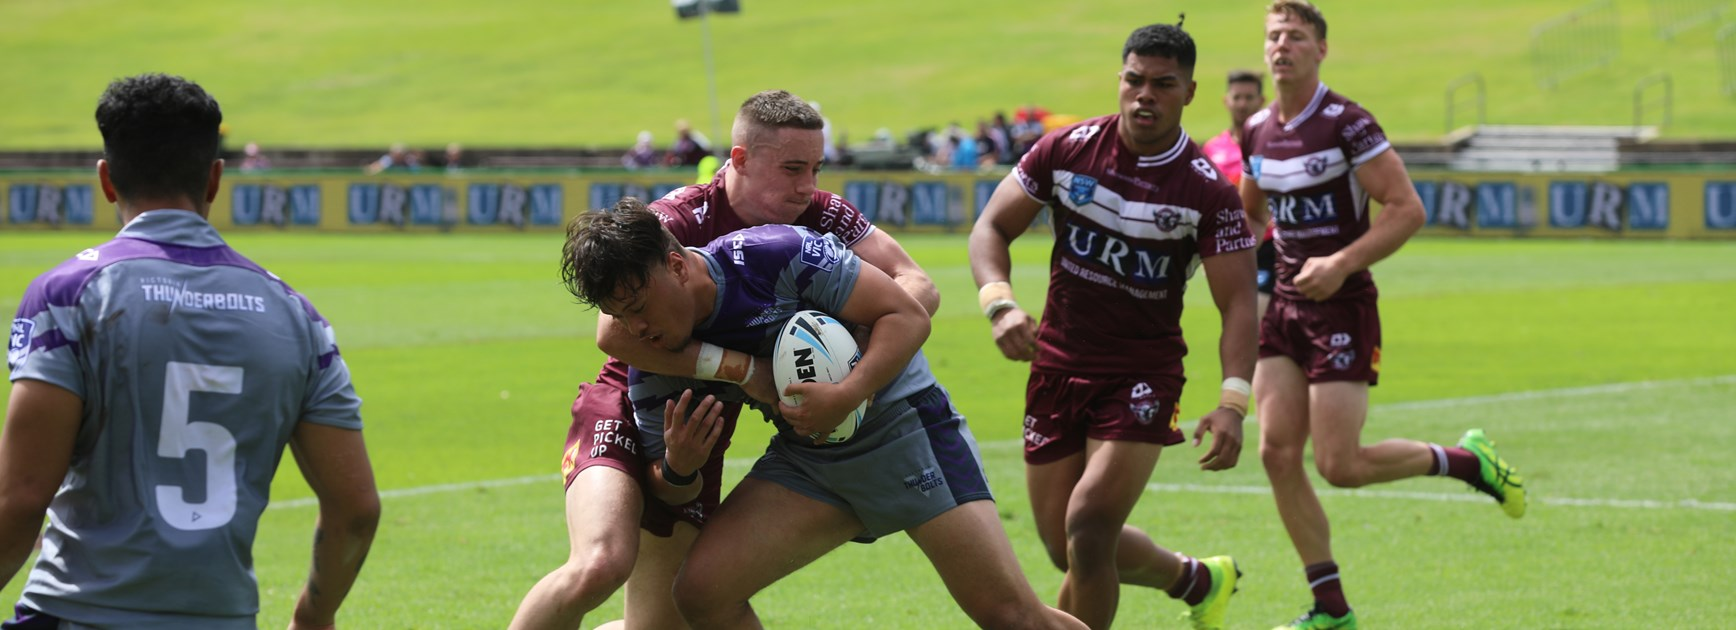 Sea Eagles beat Thunderbolts in season opener